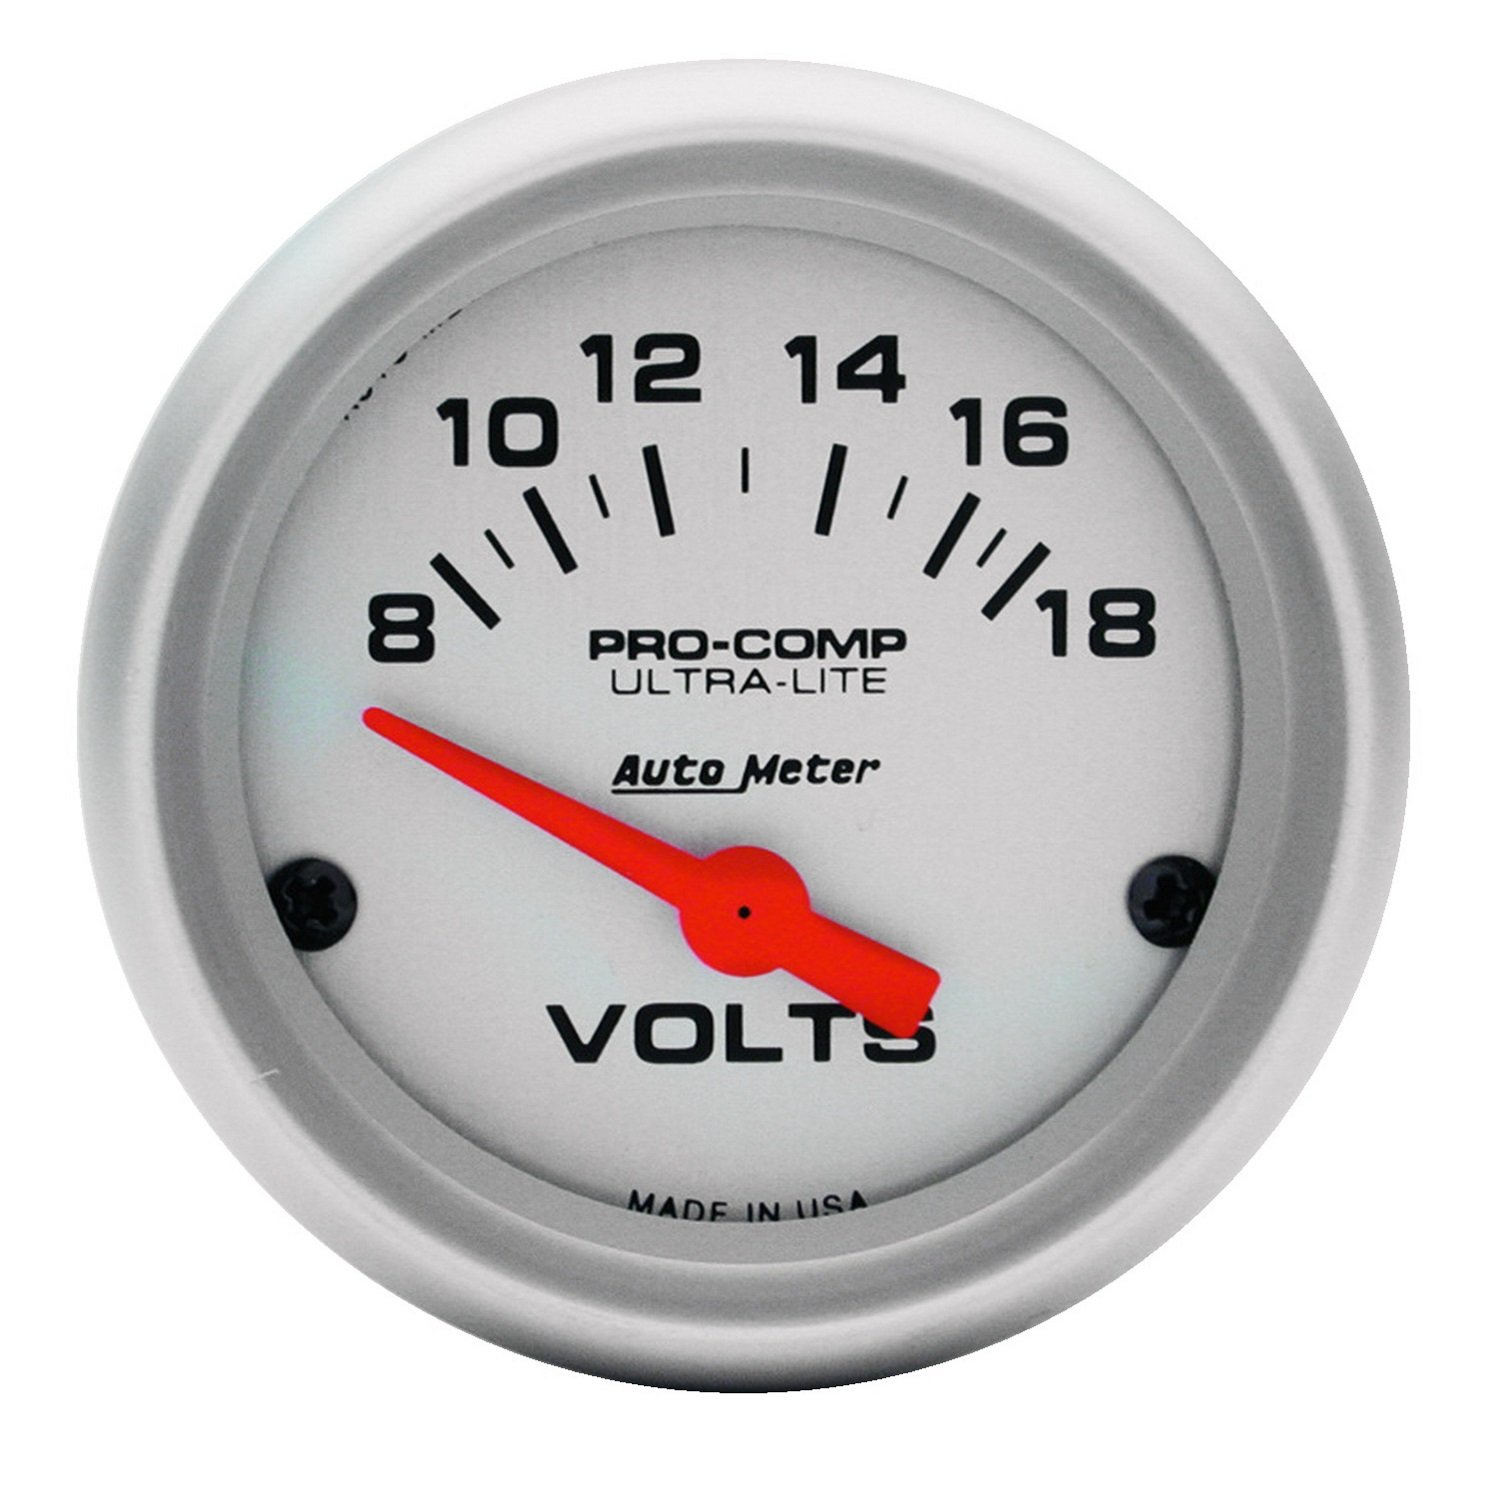 Auto Meter 4391 Ultra-Lite Electric Voltmeter Gauge by Auto Meter